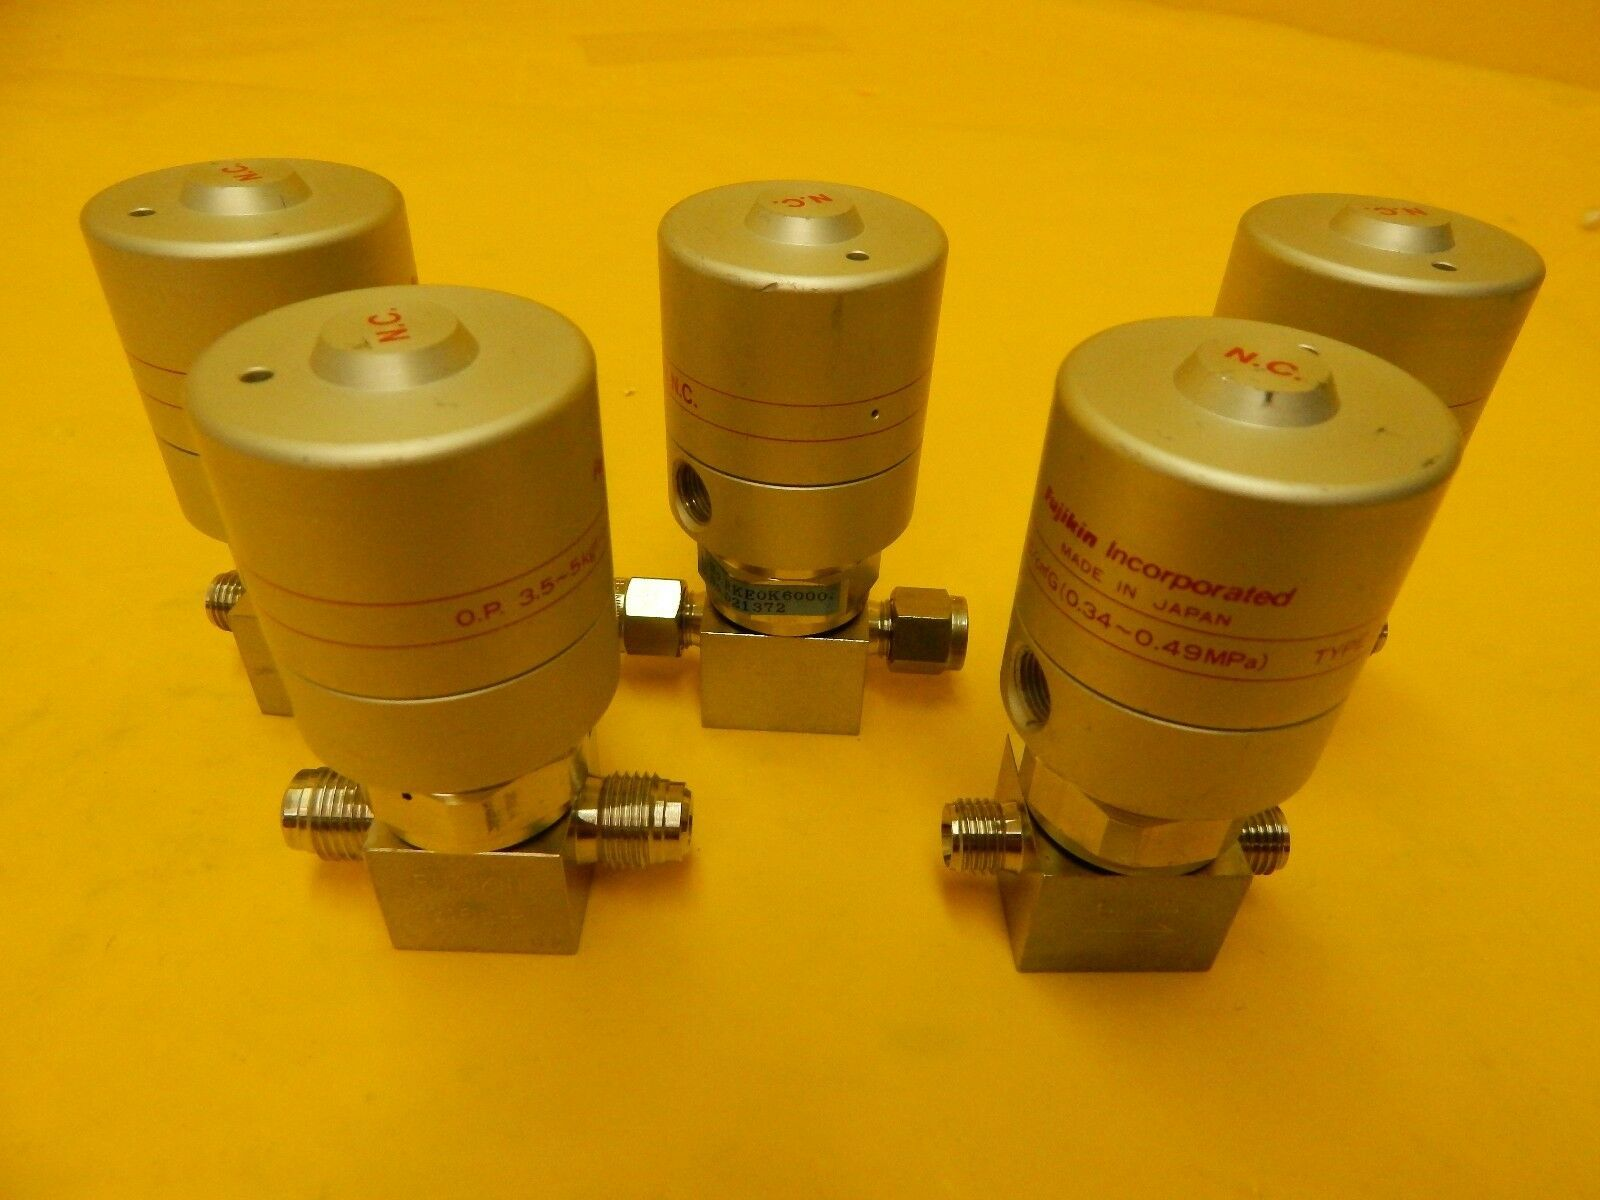 Fujikin RKE0K6000 Pneumatic Valve 021372 Normally Closed Reseller Lot of 5 Used